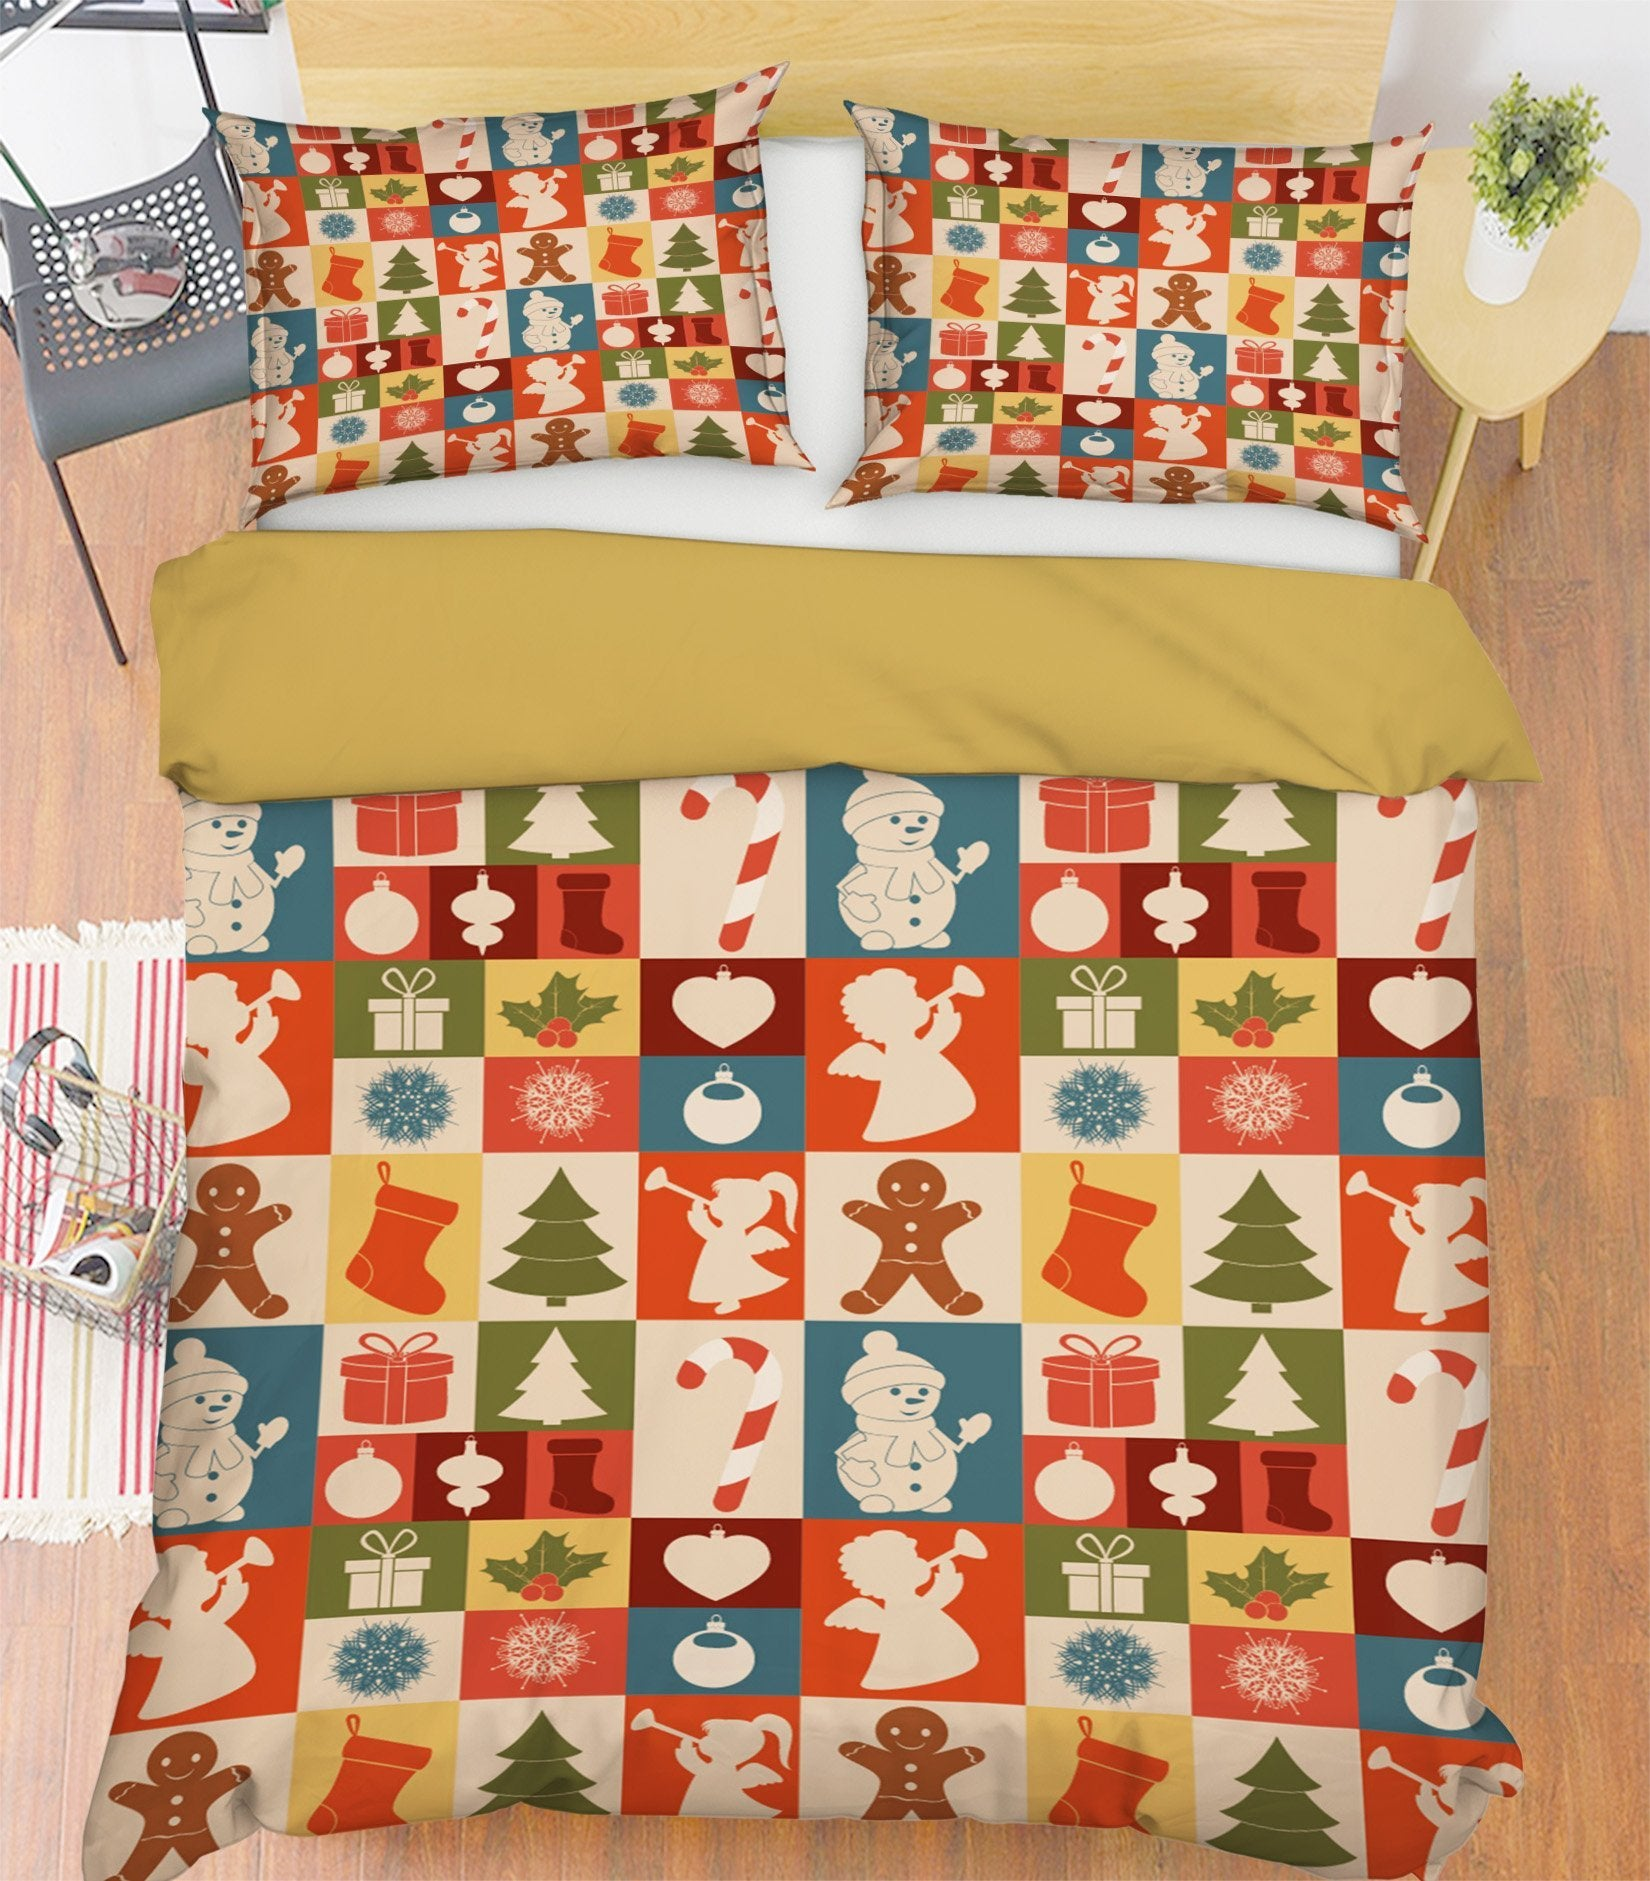 3D Christmas Plaid Pattern 31 Bed Pillowcases Quilt Quiet Covers AJ Creativity Home